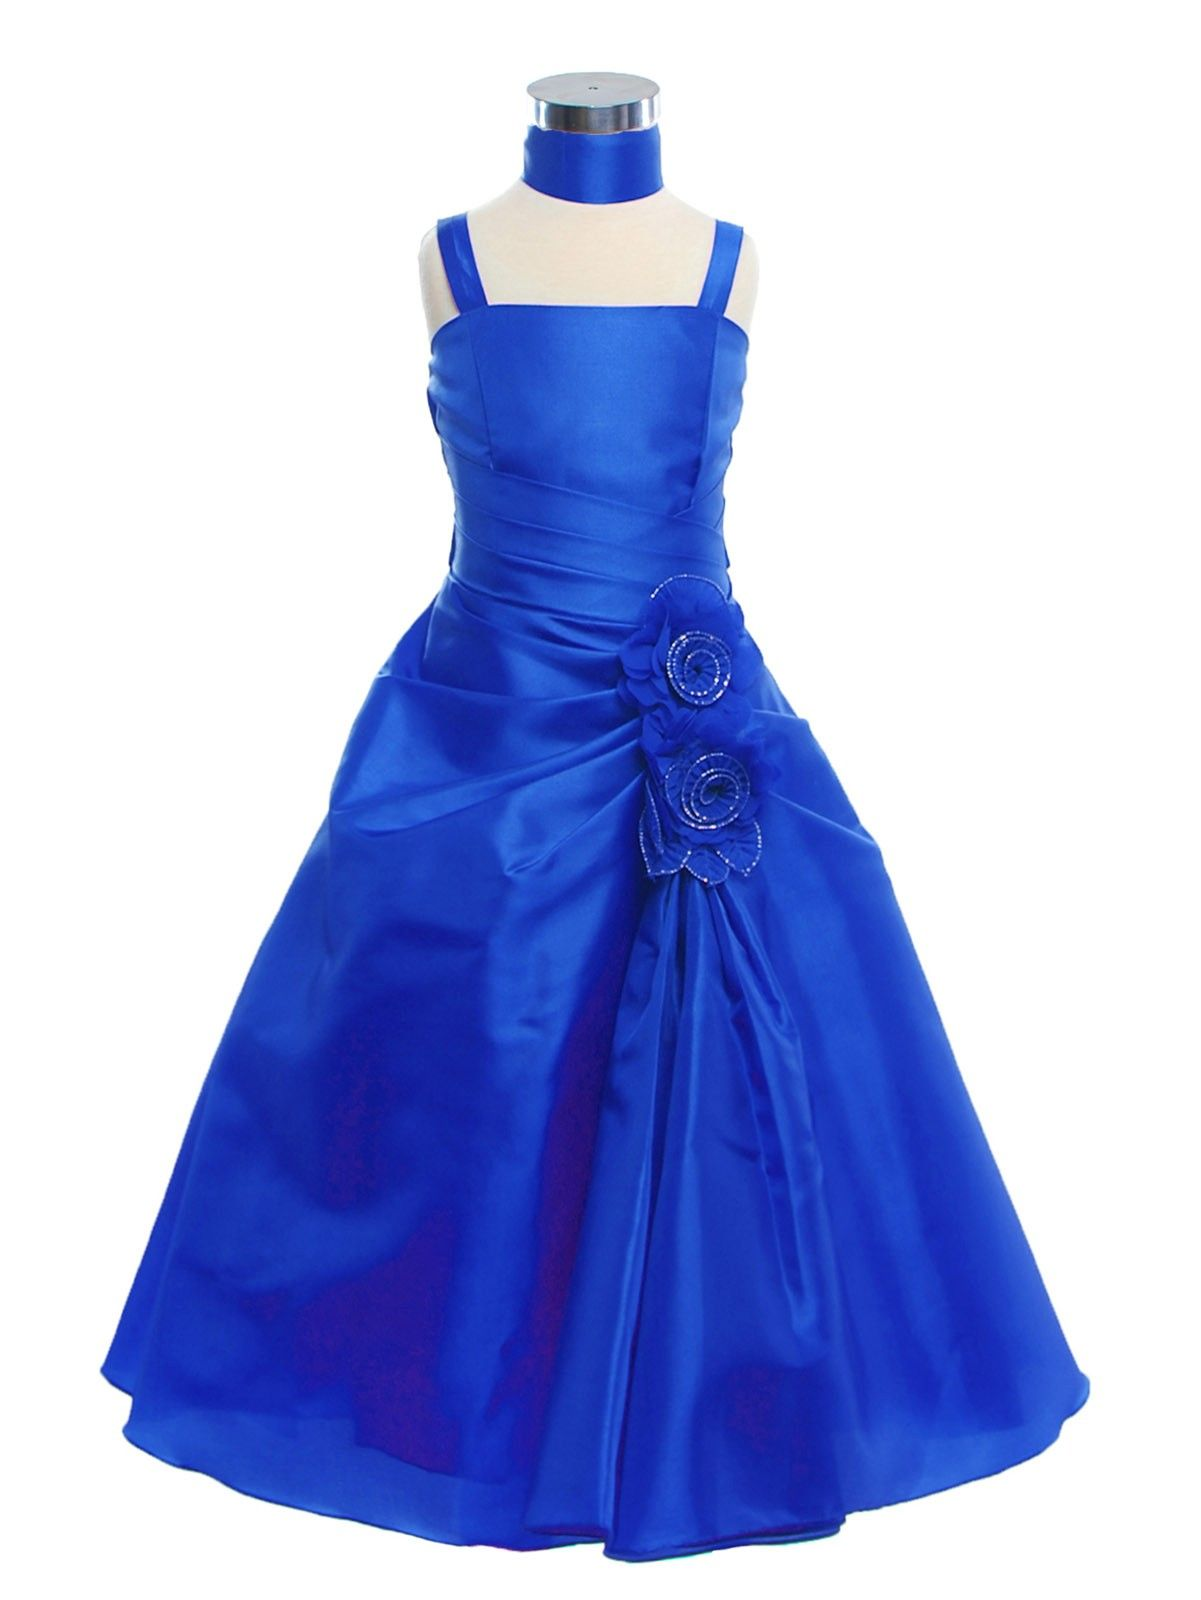 Royal Blue and Silver Organza Flower Girl Dress  Tidbits of ...